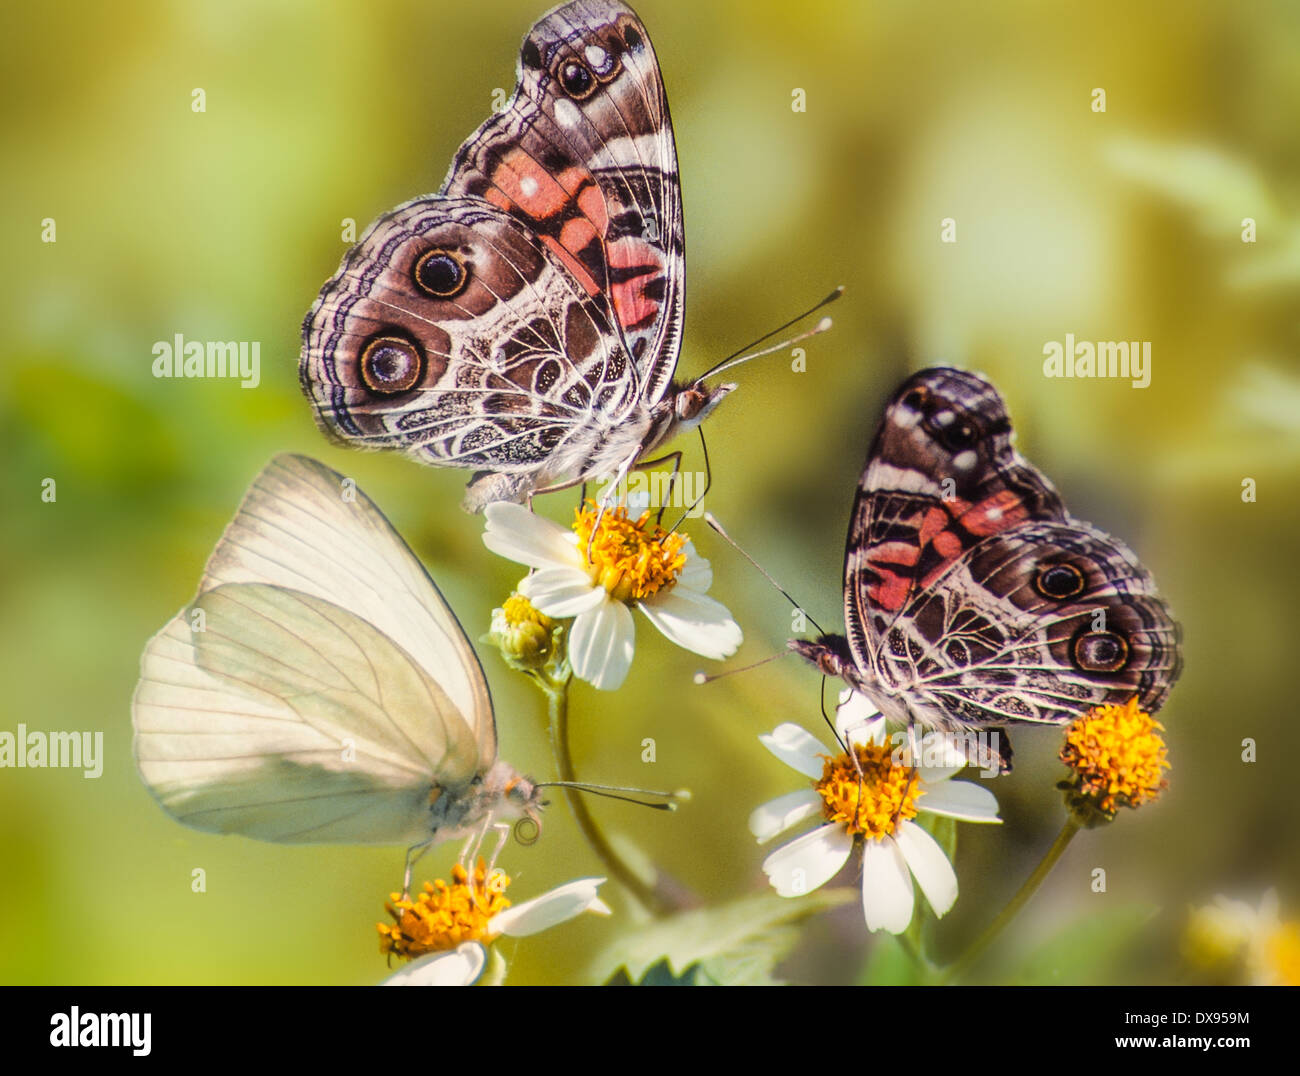 White Sulfur and Red Admiral butterflies on field daisy - Stock Image